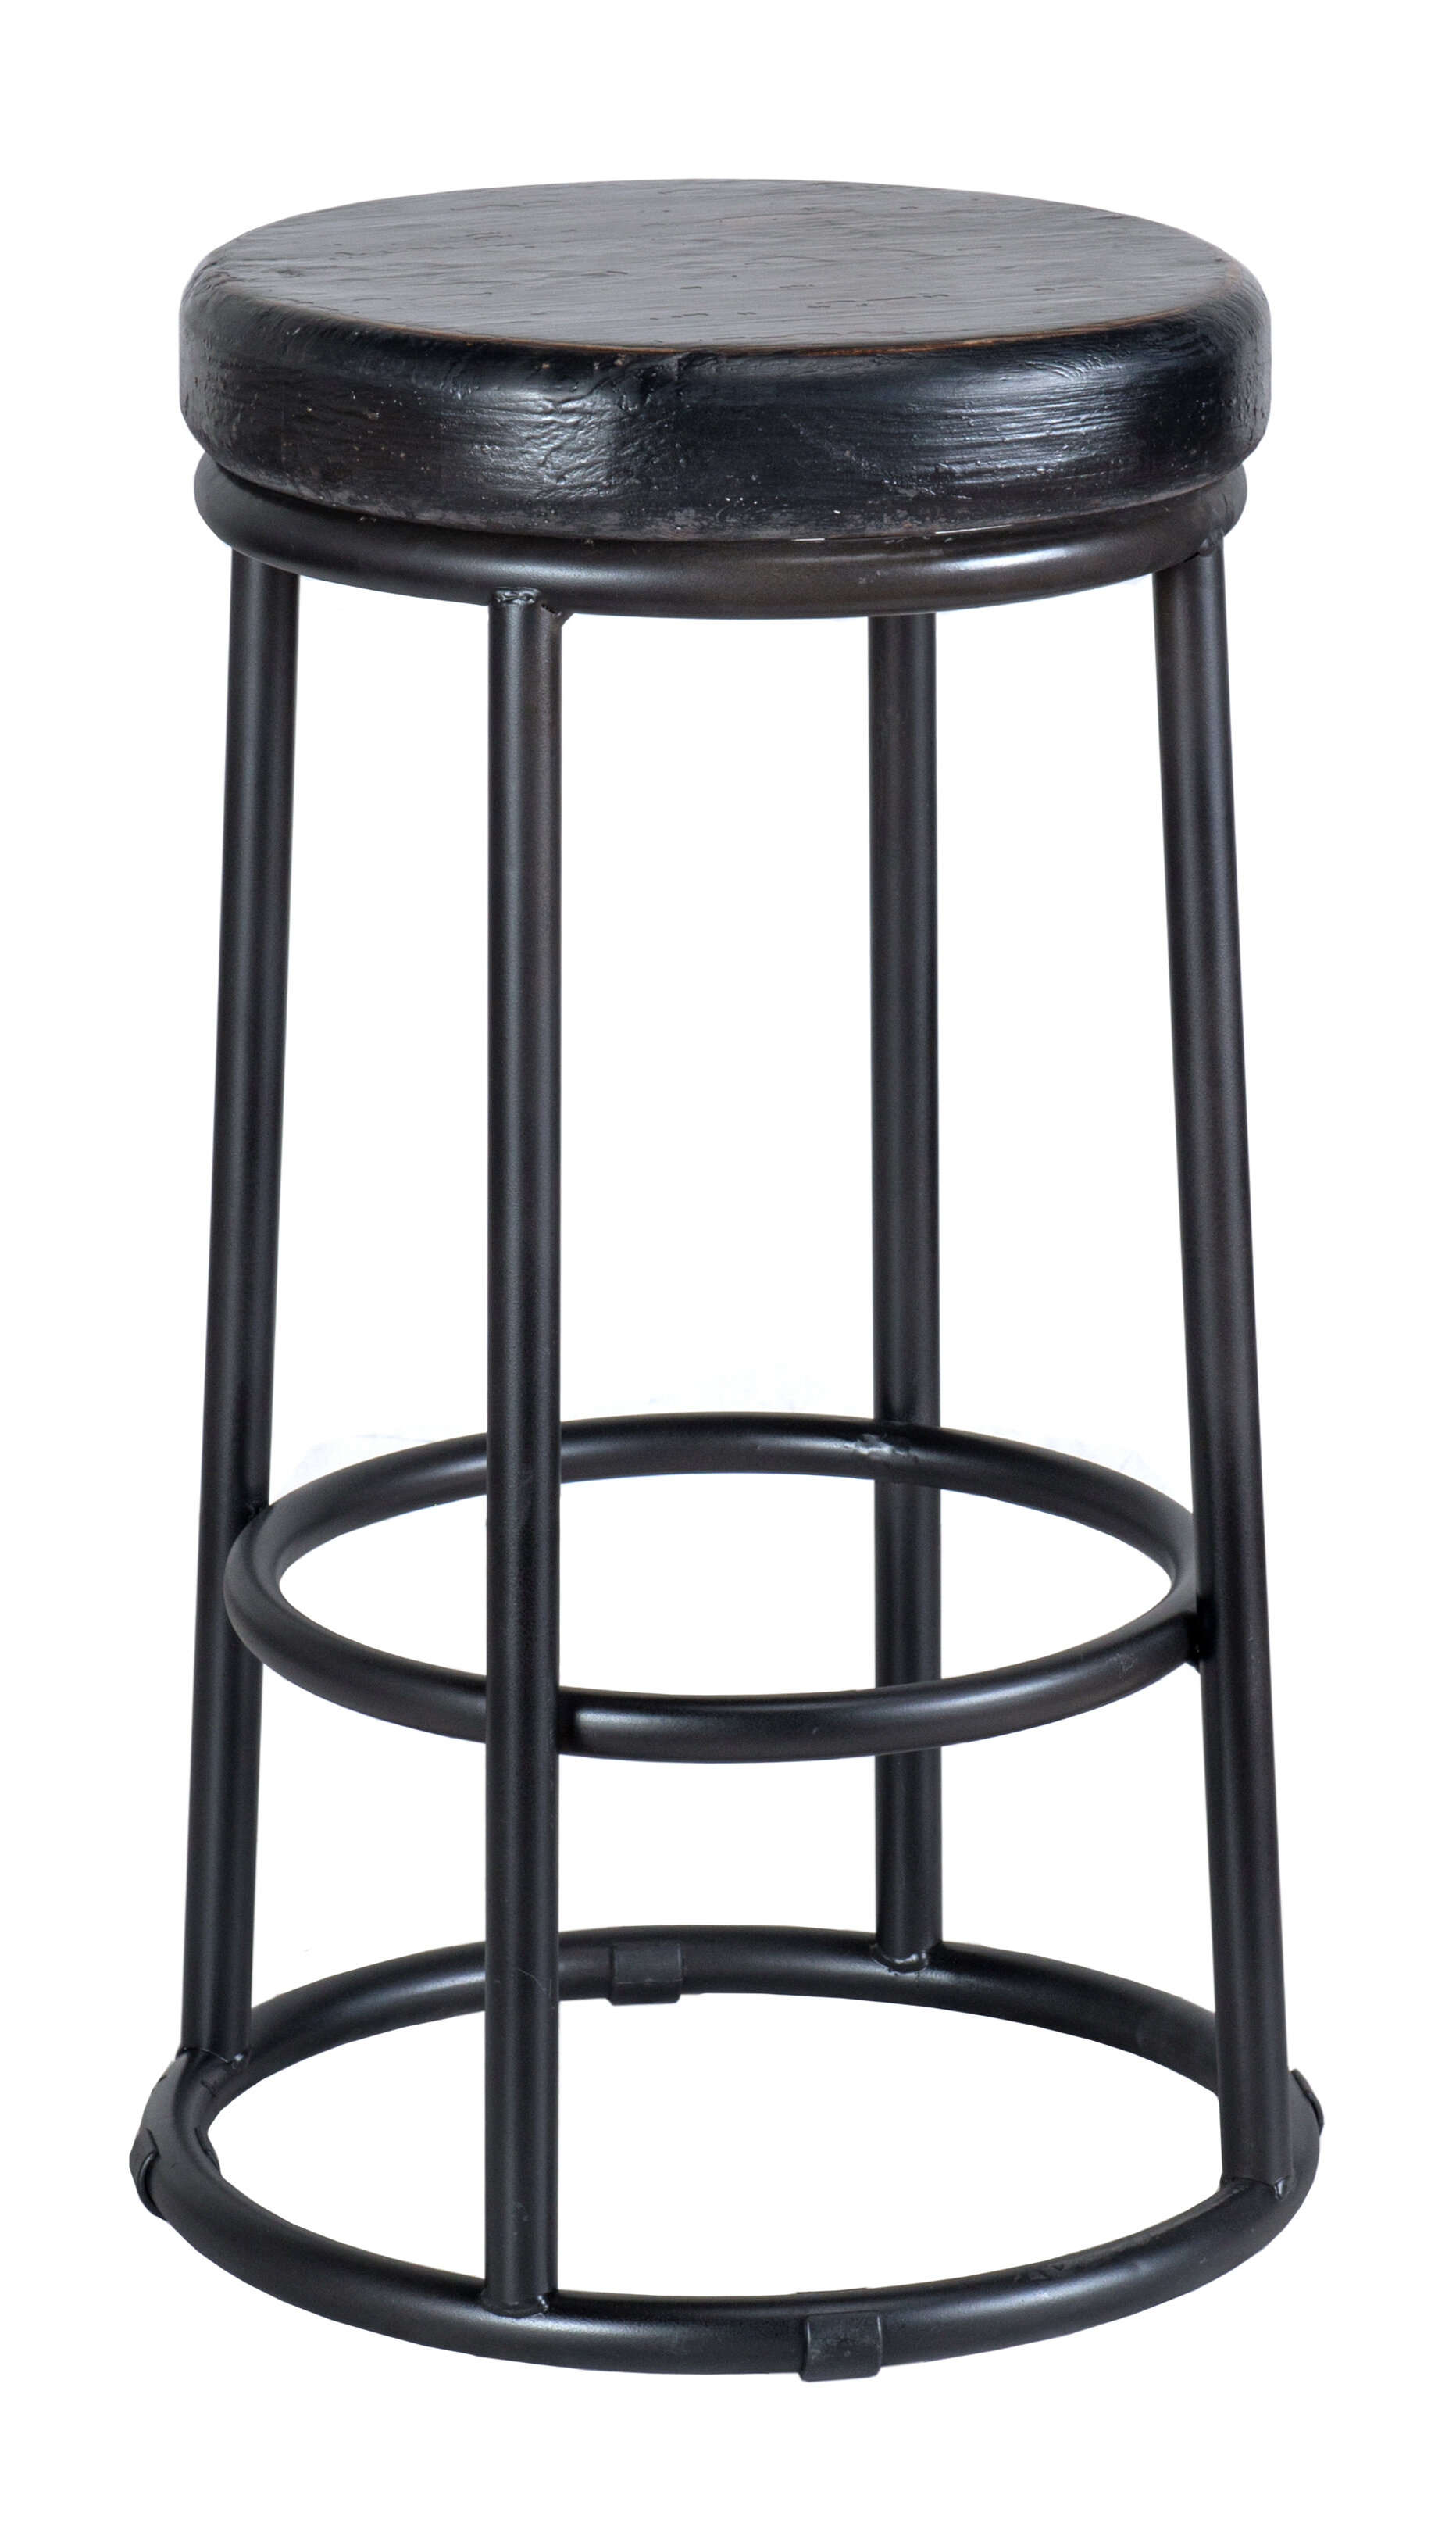 Remarkable Kendall Bar Counter Stool Spiritservingveterans Wood Chair Design Ideas Spiritservingveteransorg